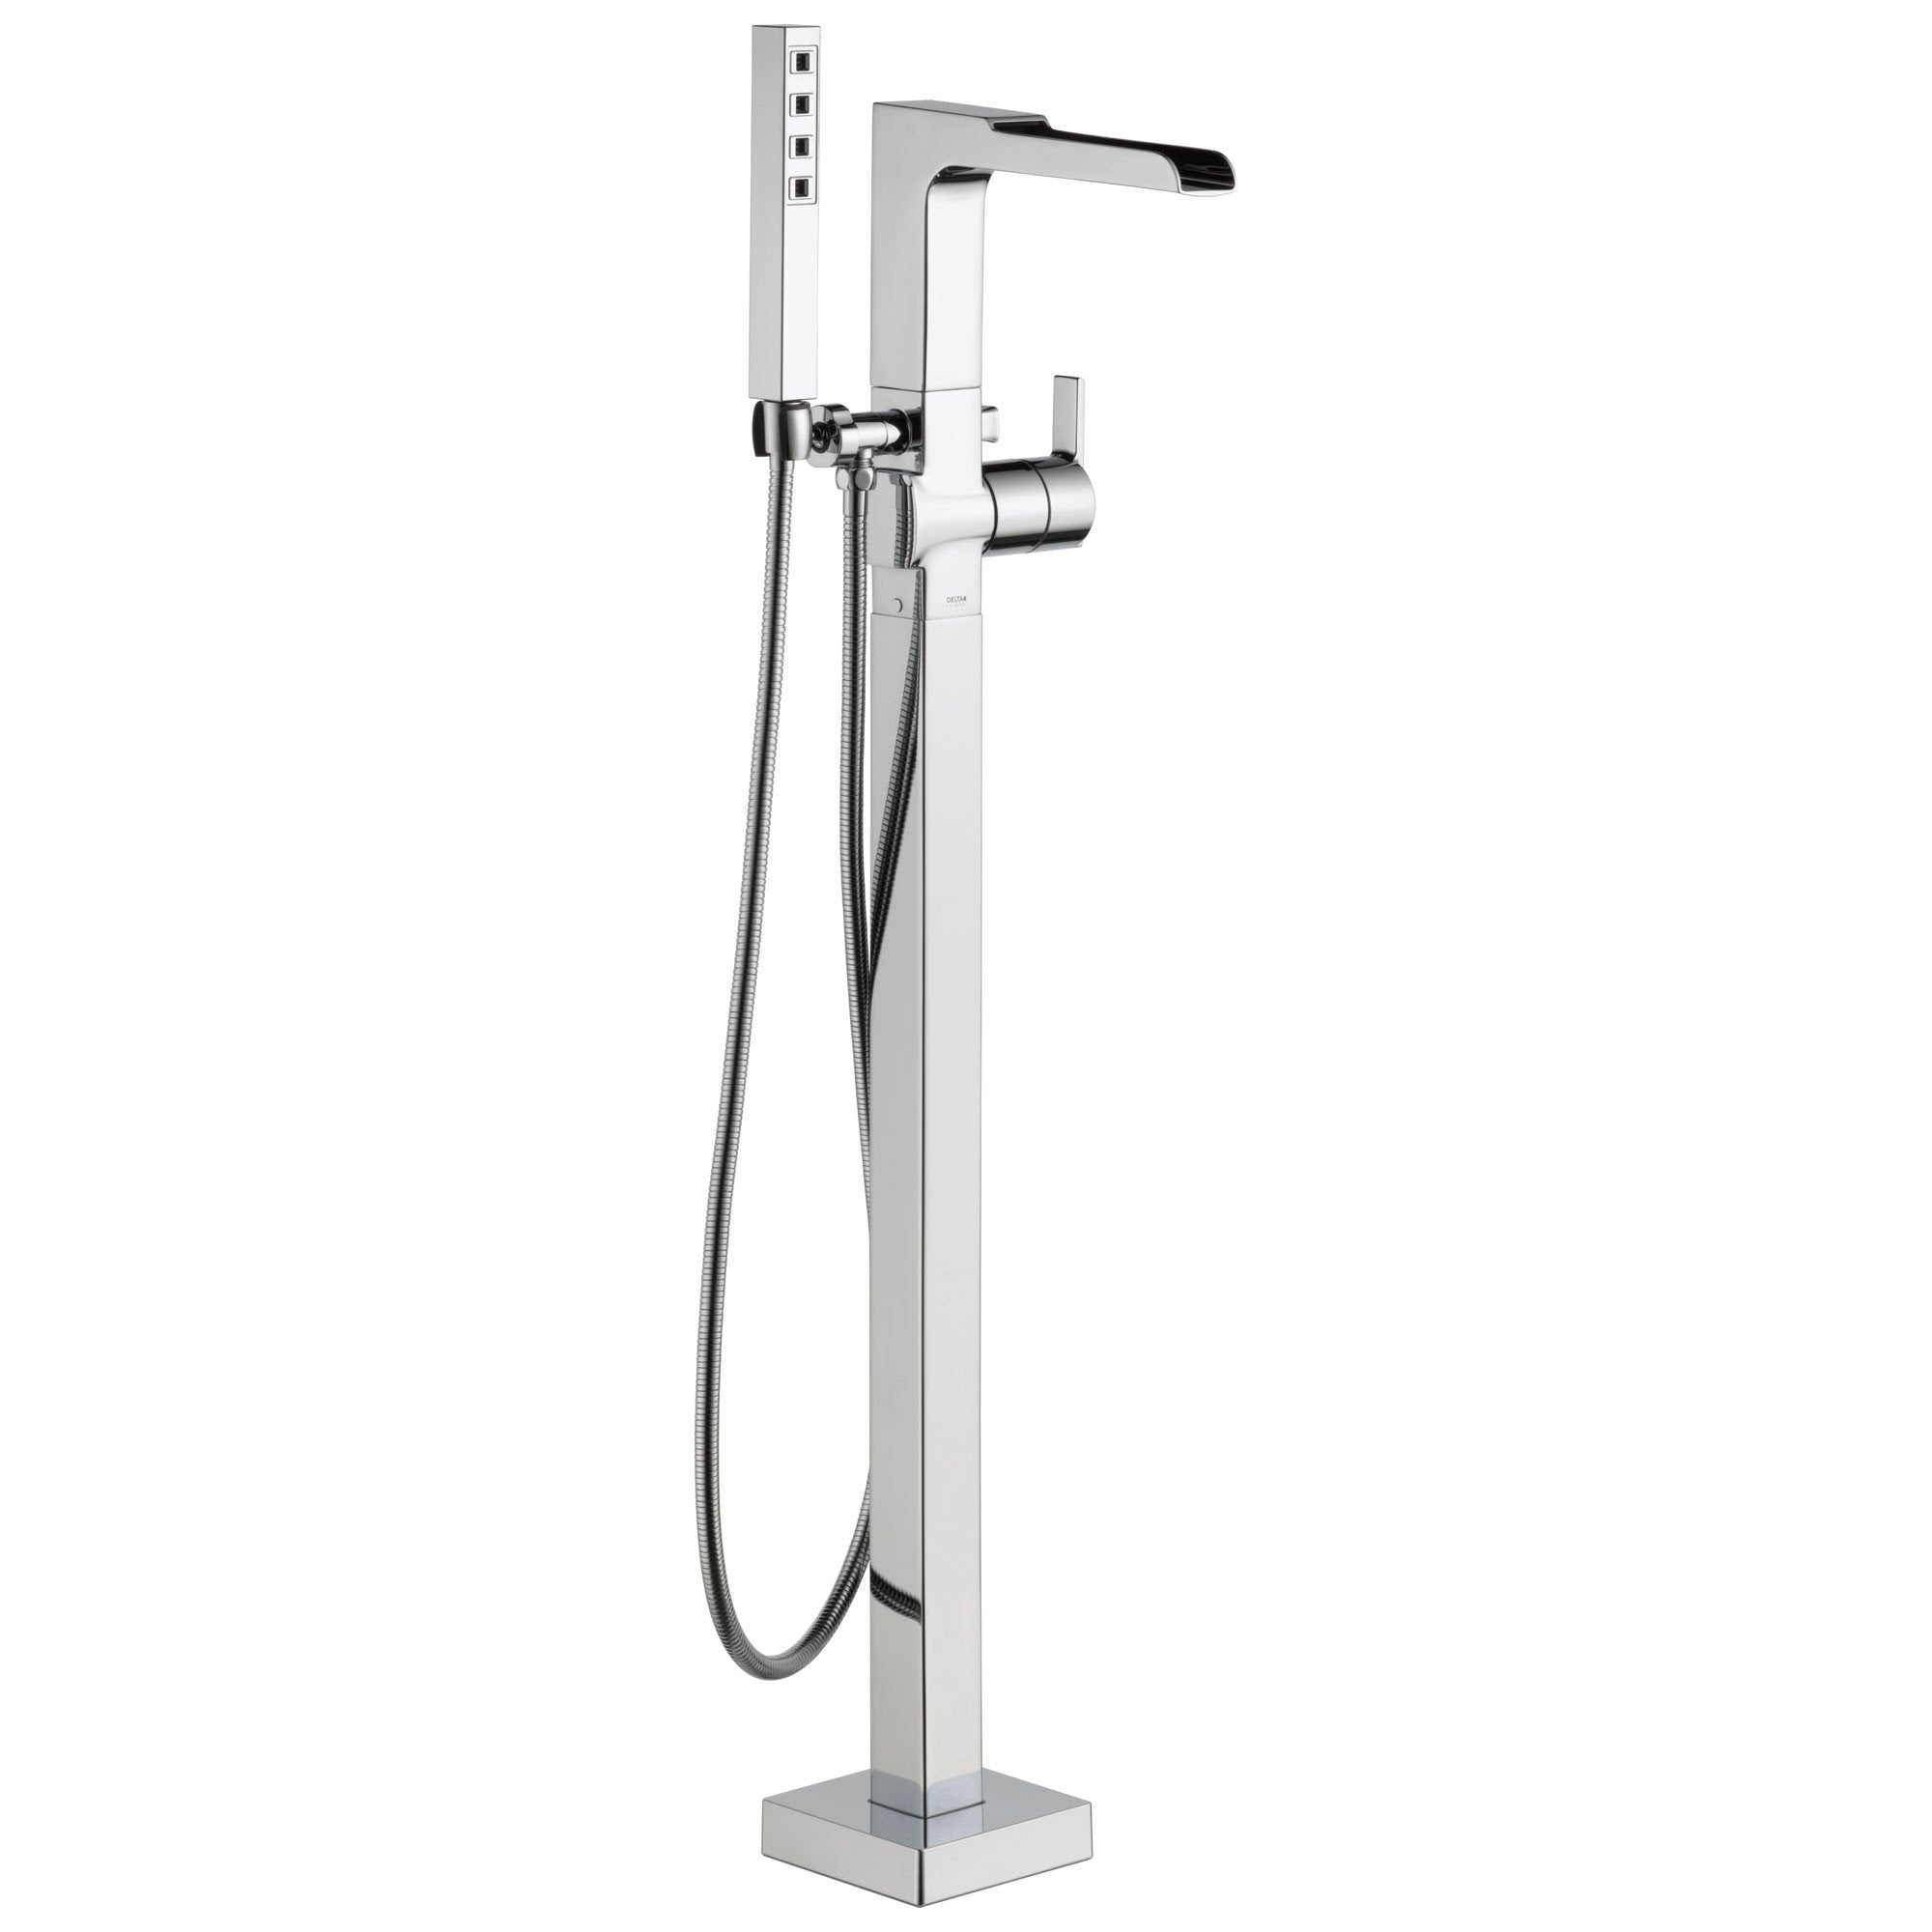 Delta Ara Collection Chrome Floor Mount Freestanding Channel Spout Tub Filler Faucet with Hand Shower Trim Kit only (Requires Rough-in Valve) DT4768FL